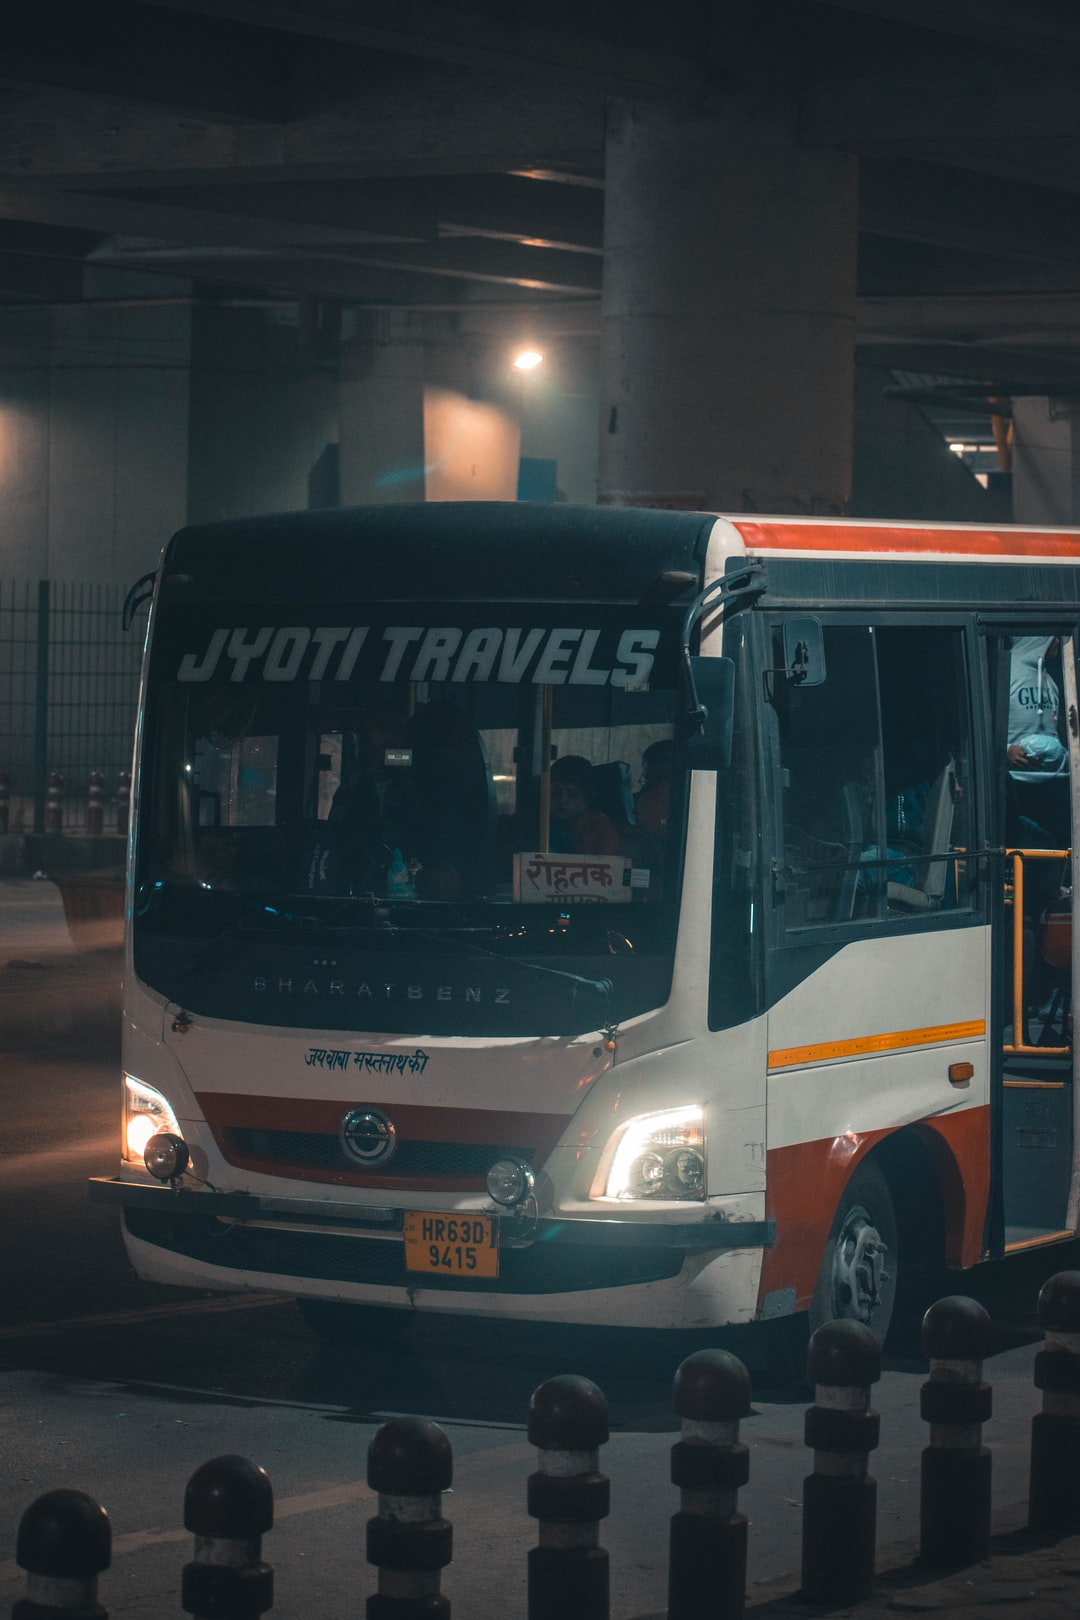 The local bus driving through the cold and chilly nights of the city